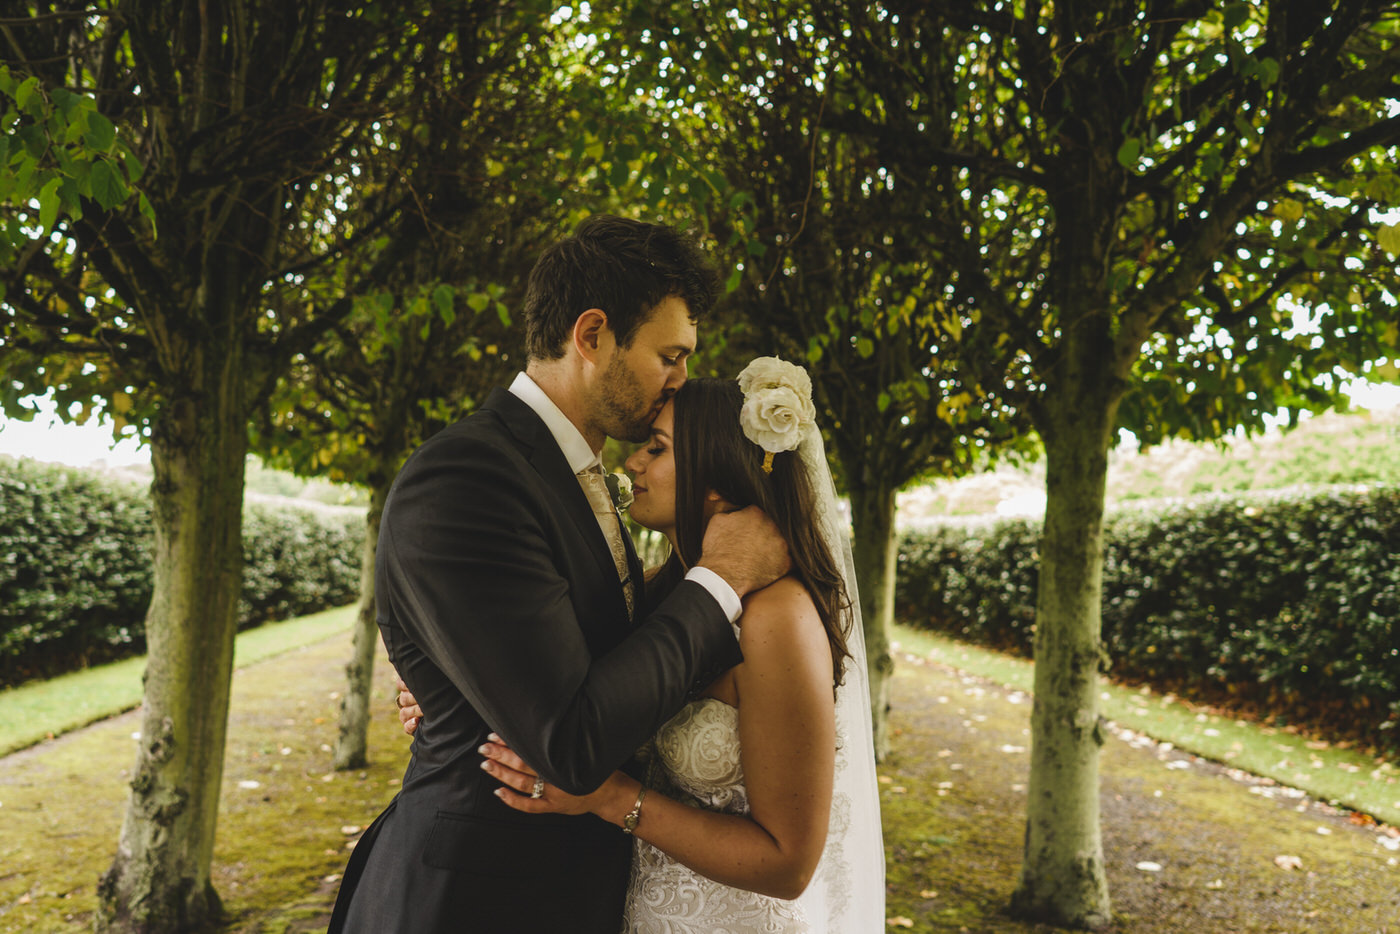 the groom tenderly kisses his bride on the forehead